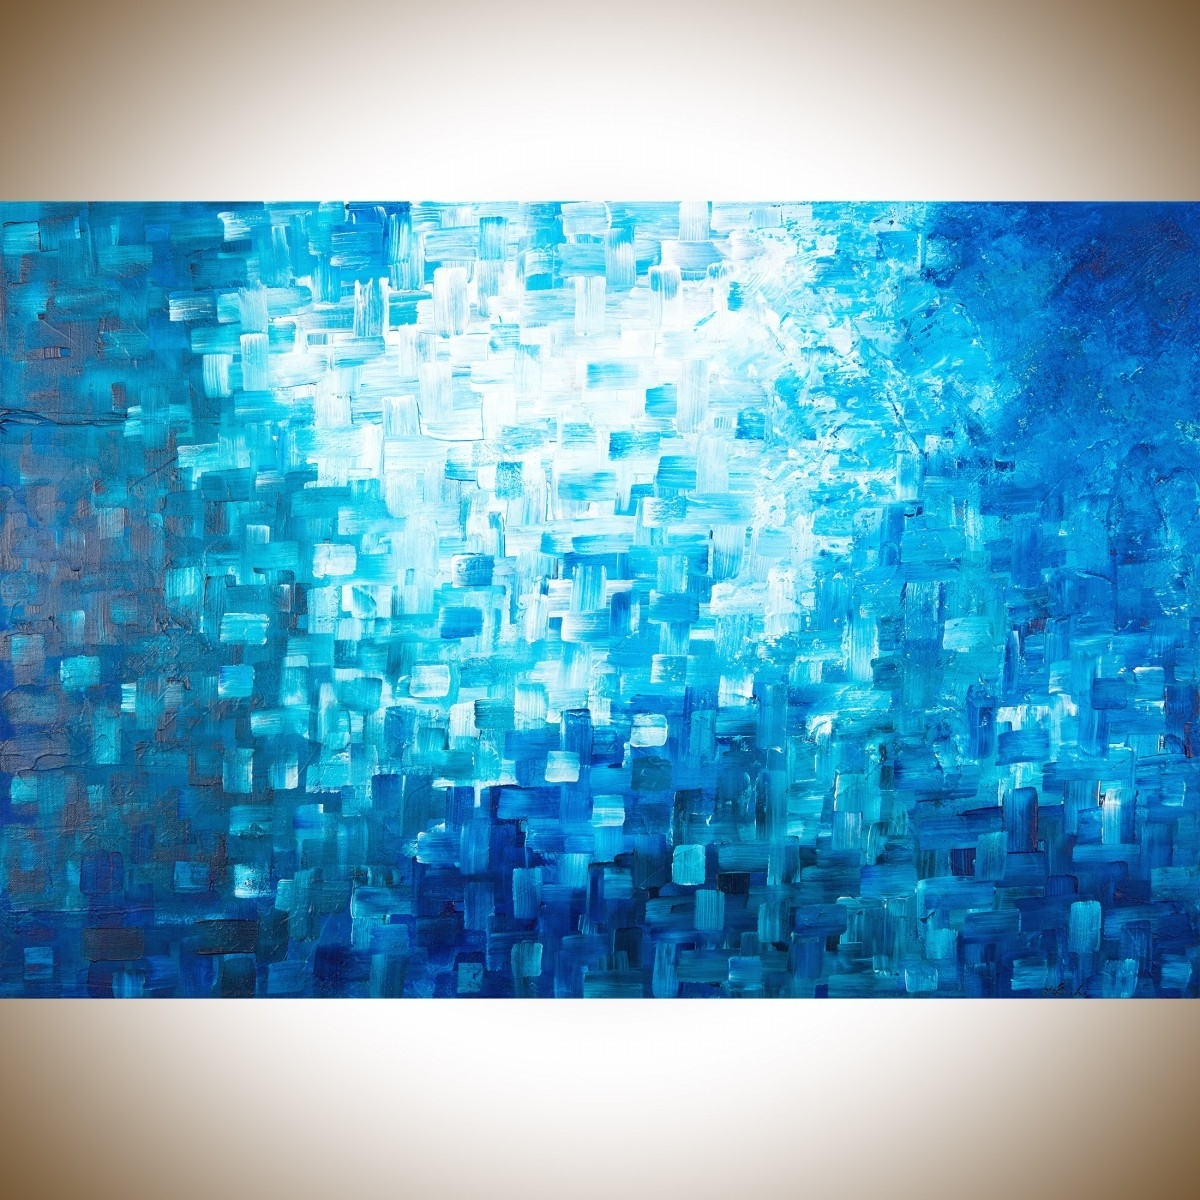 "Healingqiqigallery 36""x24"" Stretched Canvas Original Modern Inside Most Recent Abstract Wall Art For Office (Gallery 3 of 20)"